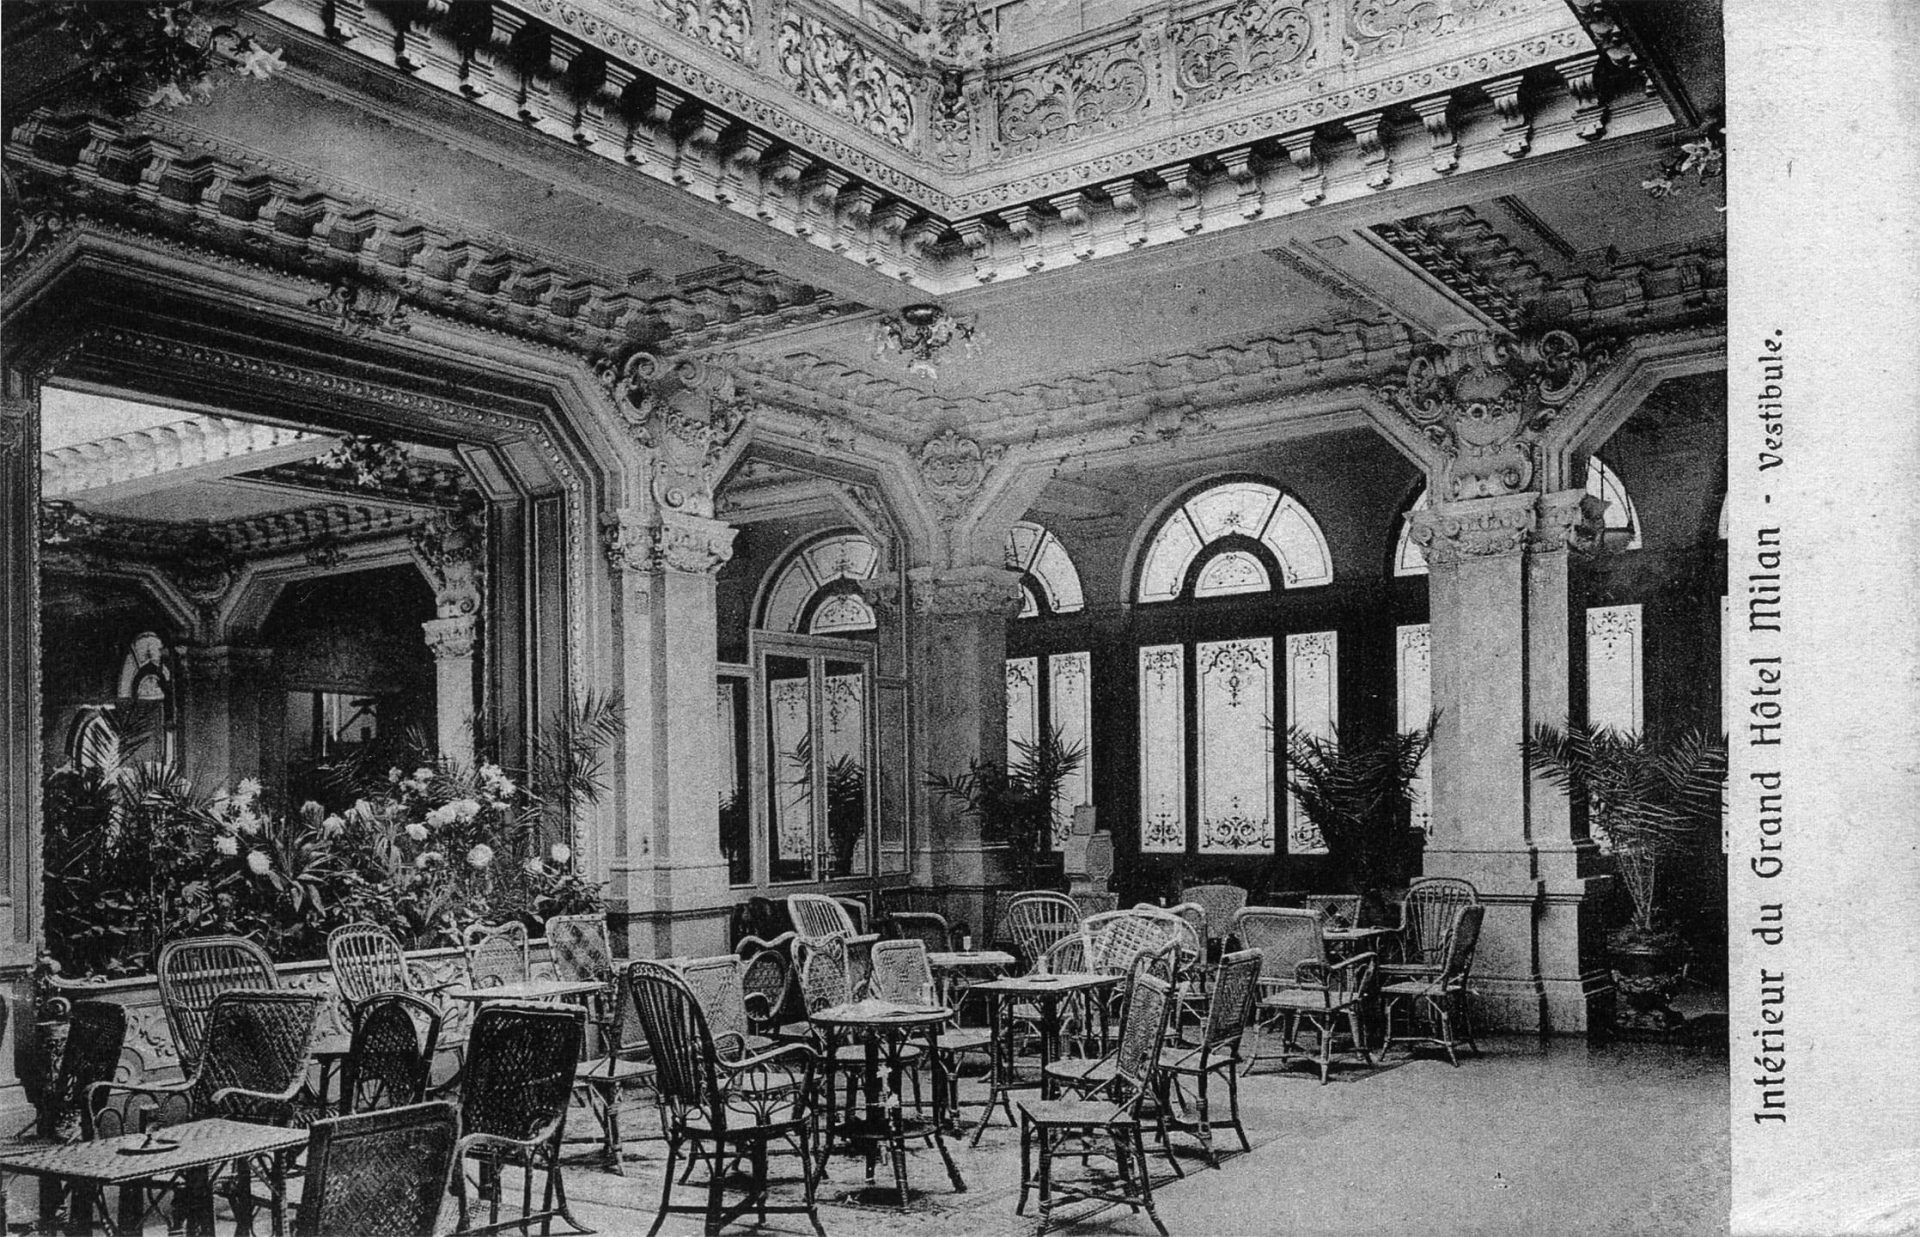 Black and white interior image of Grand Hotel et de Milan in the year 1800